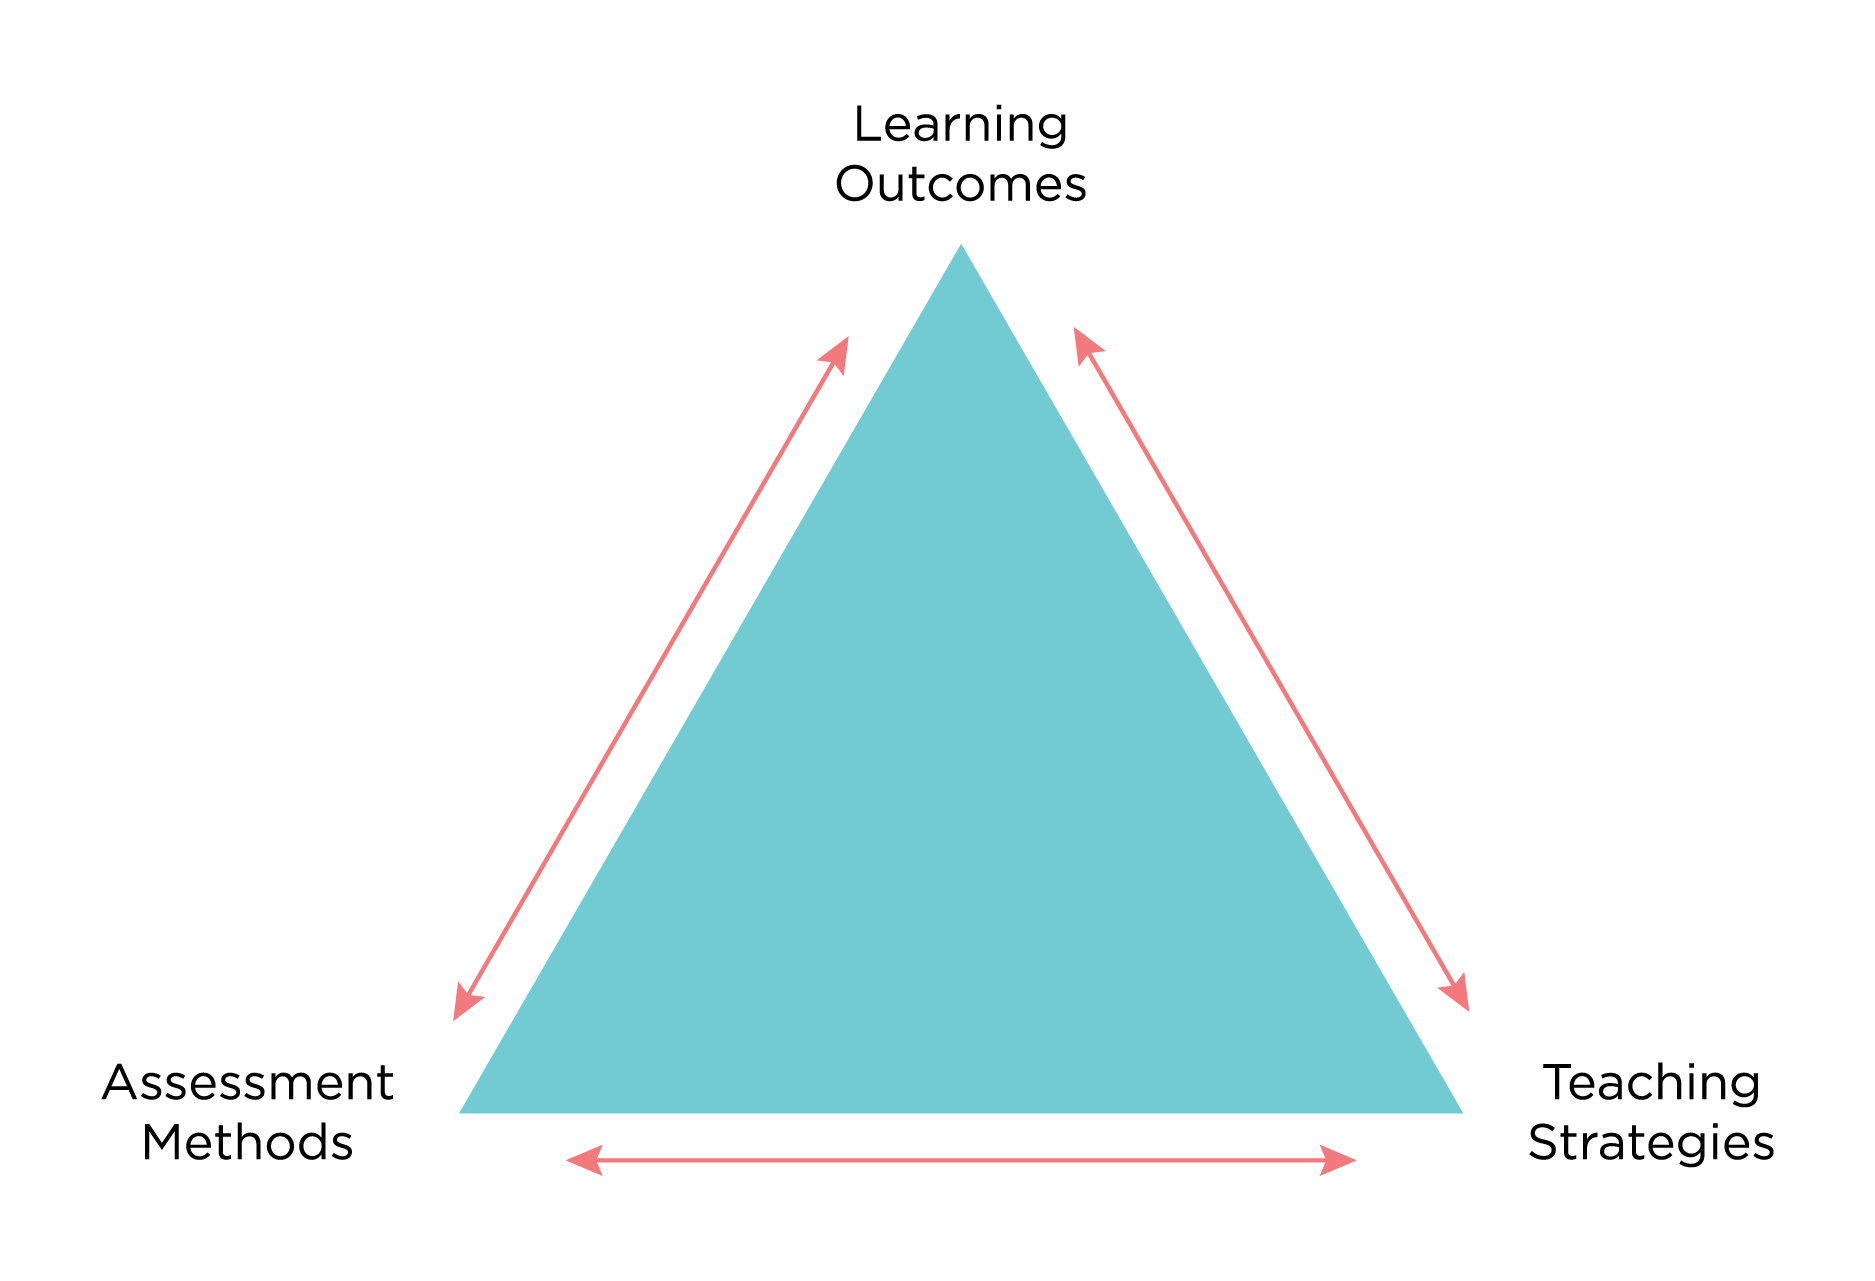 Constructive alignment is achieving coherence between Learning Outcomes, Assessment methods, and Teaching Strategies, we can think of these three areas as the three points in a triangle.